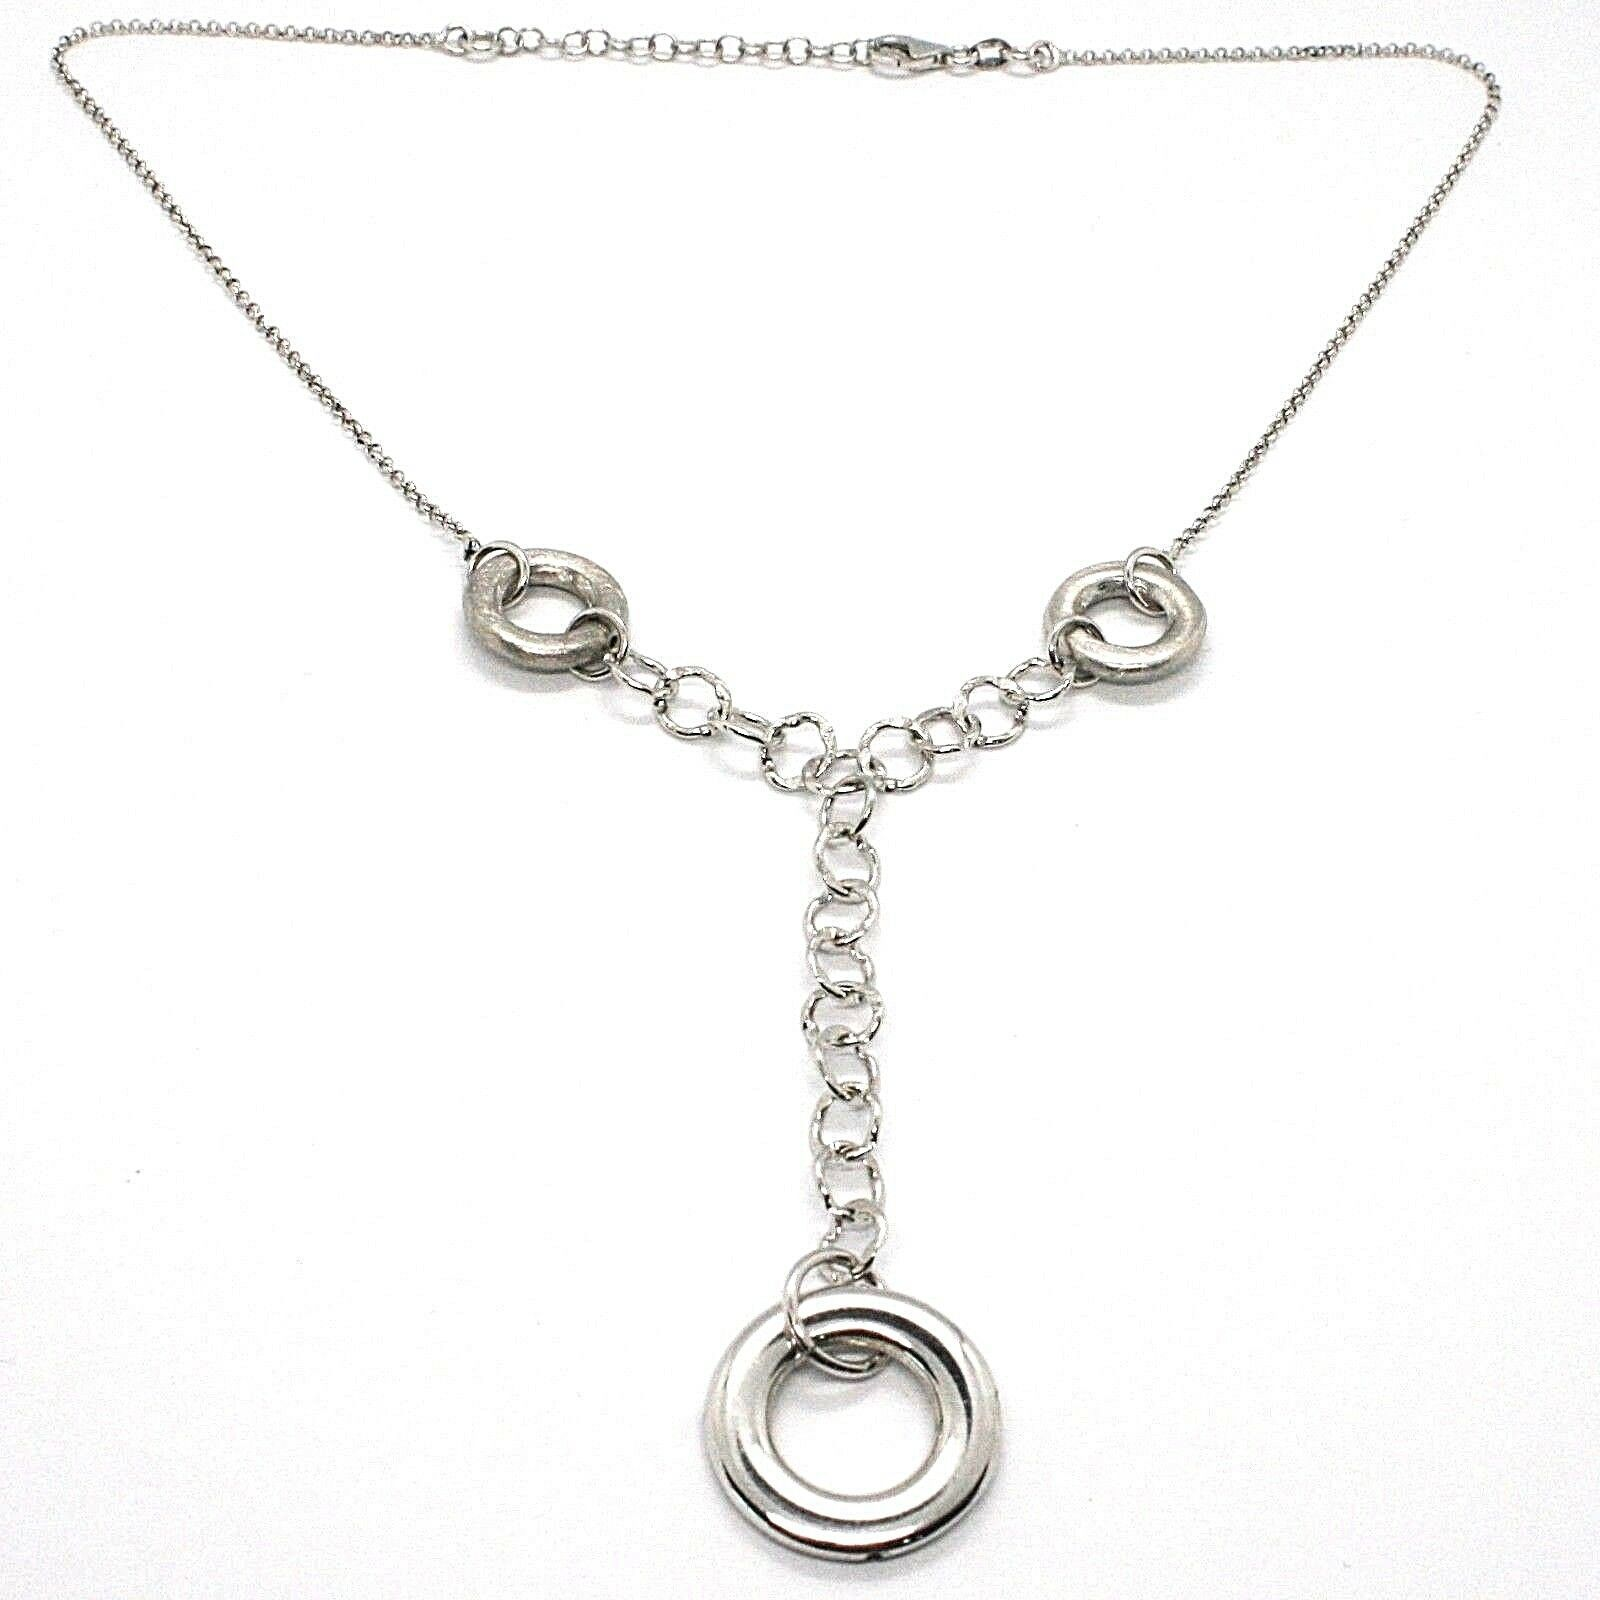 Necklace Silver 925, Chain Rolo ' , Circles Hanging, Worked and Hammered